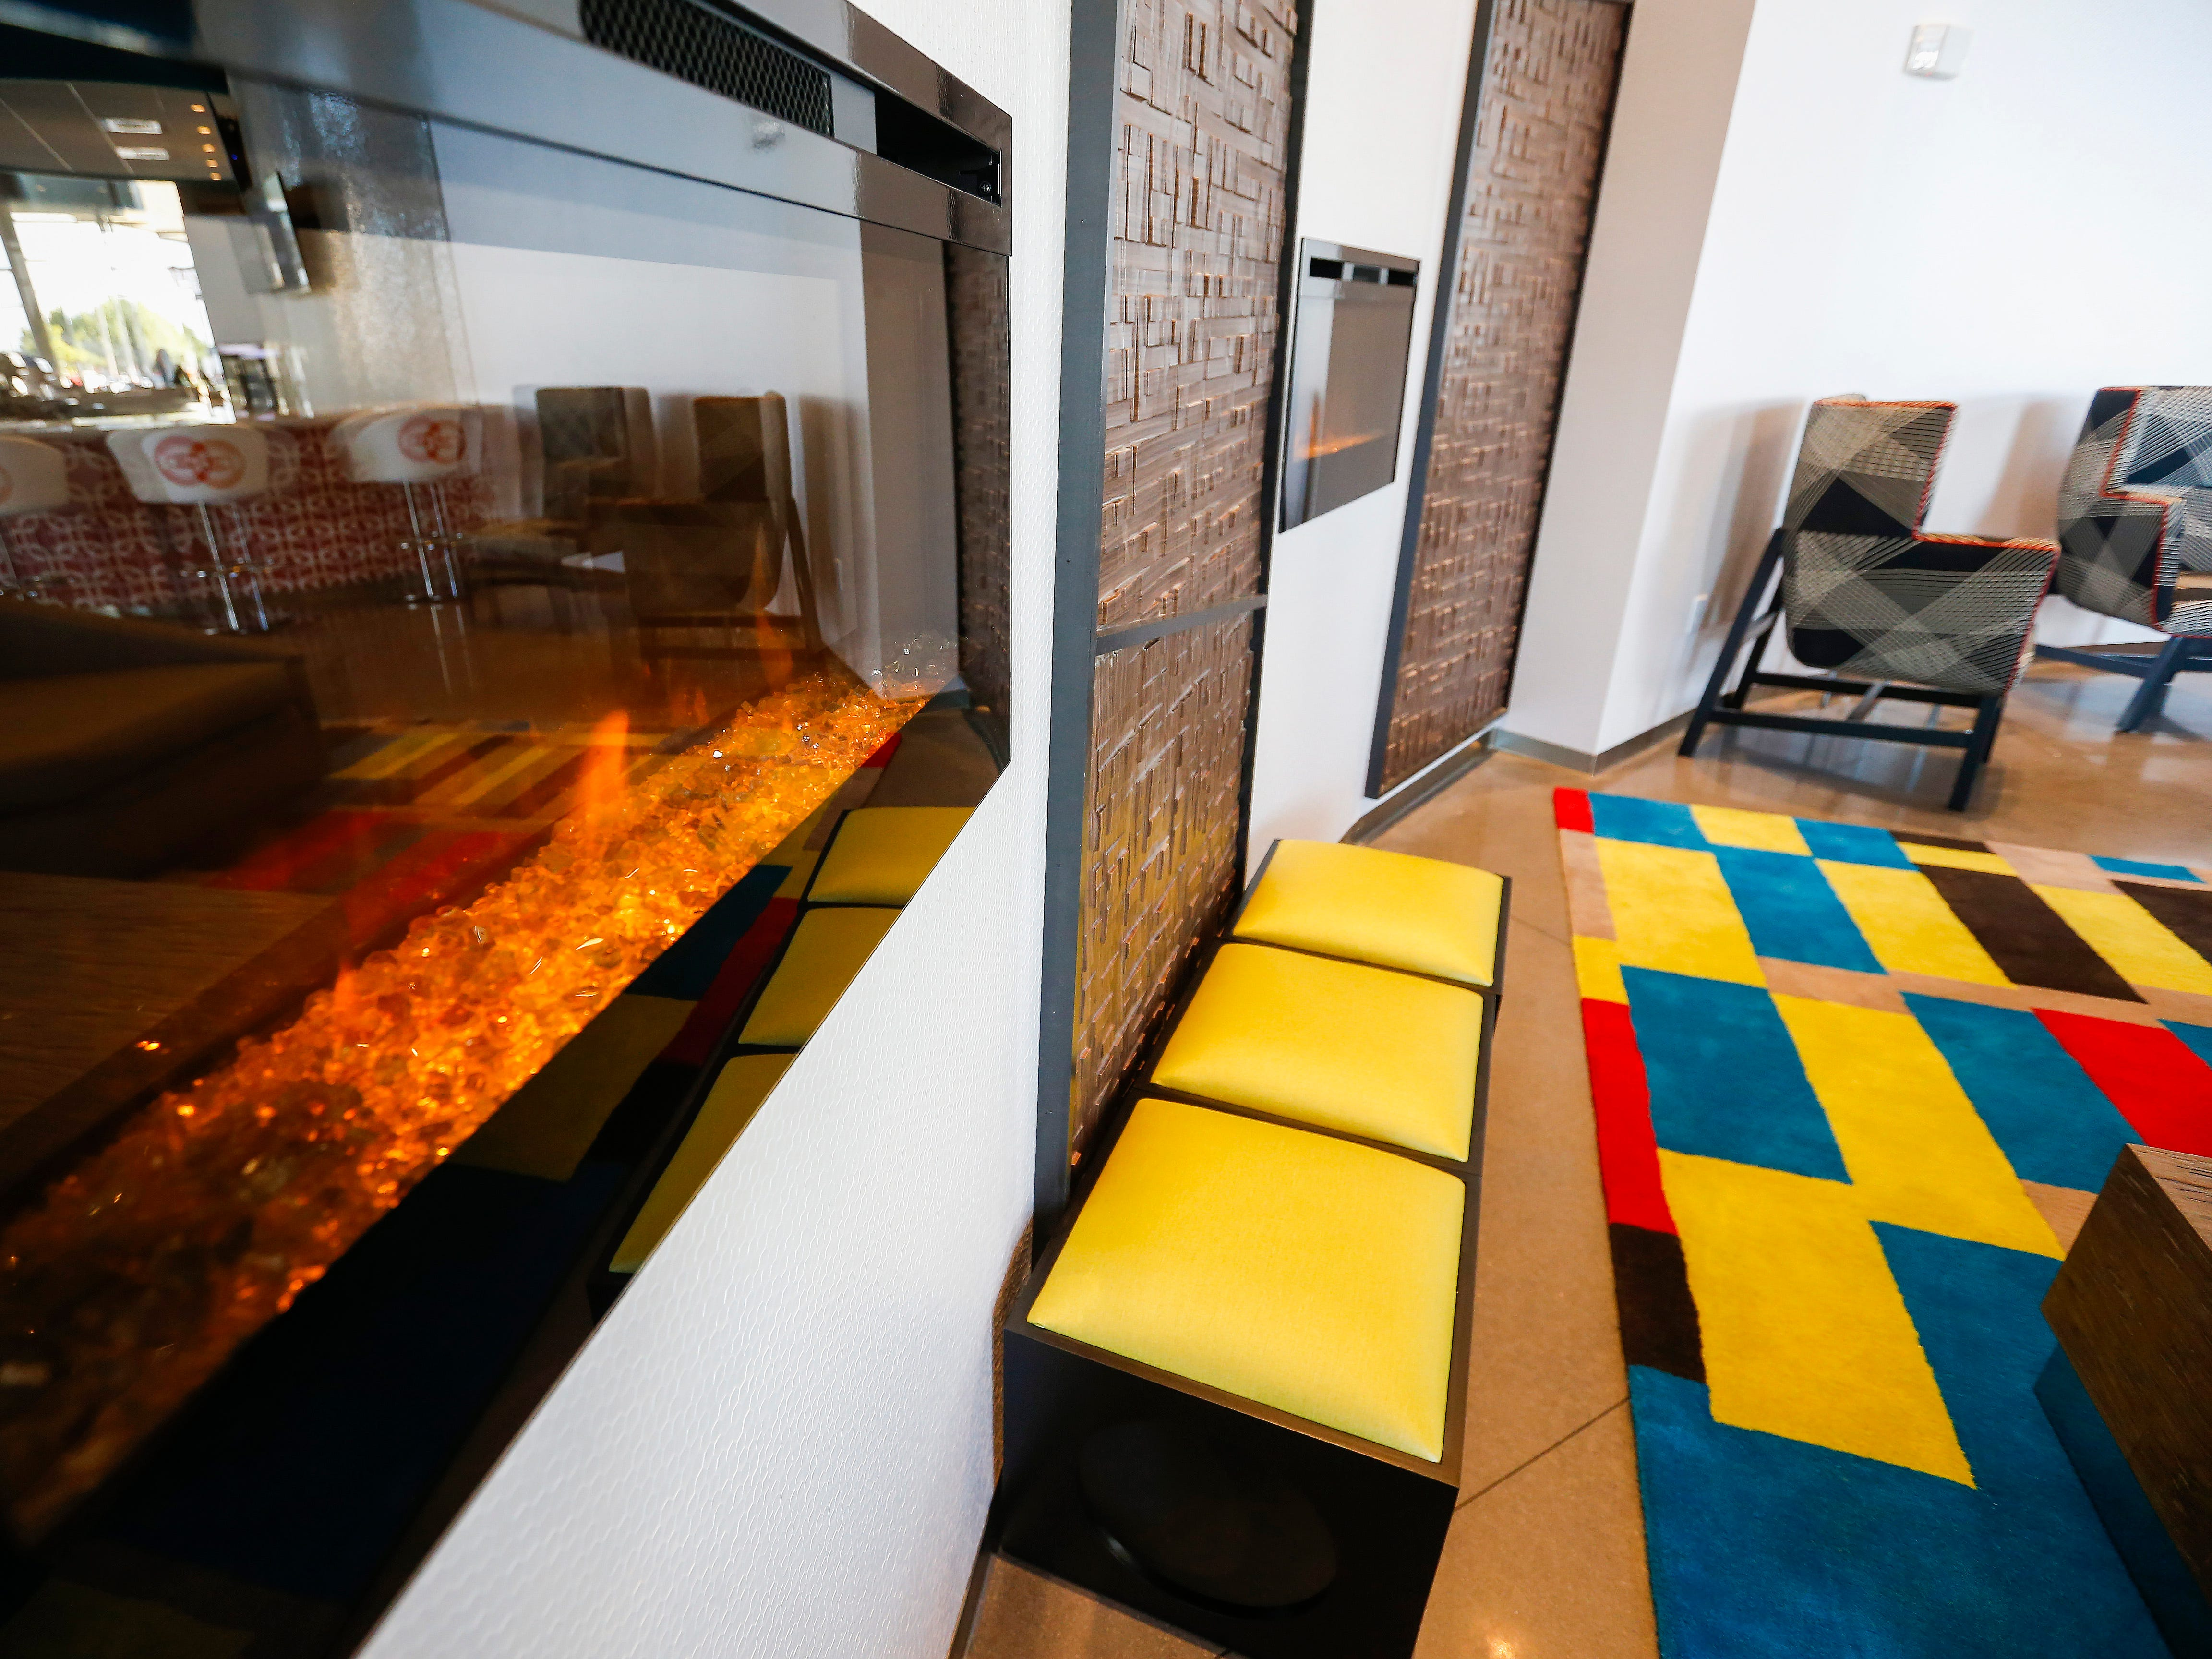 Two fireplaces highlight a seating area in the lobby at the new Vib Hotel, located at 1845 E Sunshine St. The hotel will hold its grand opening on Friday, Aug. 10, 2018.